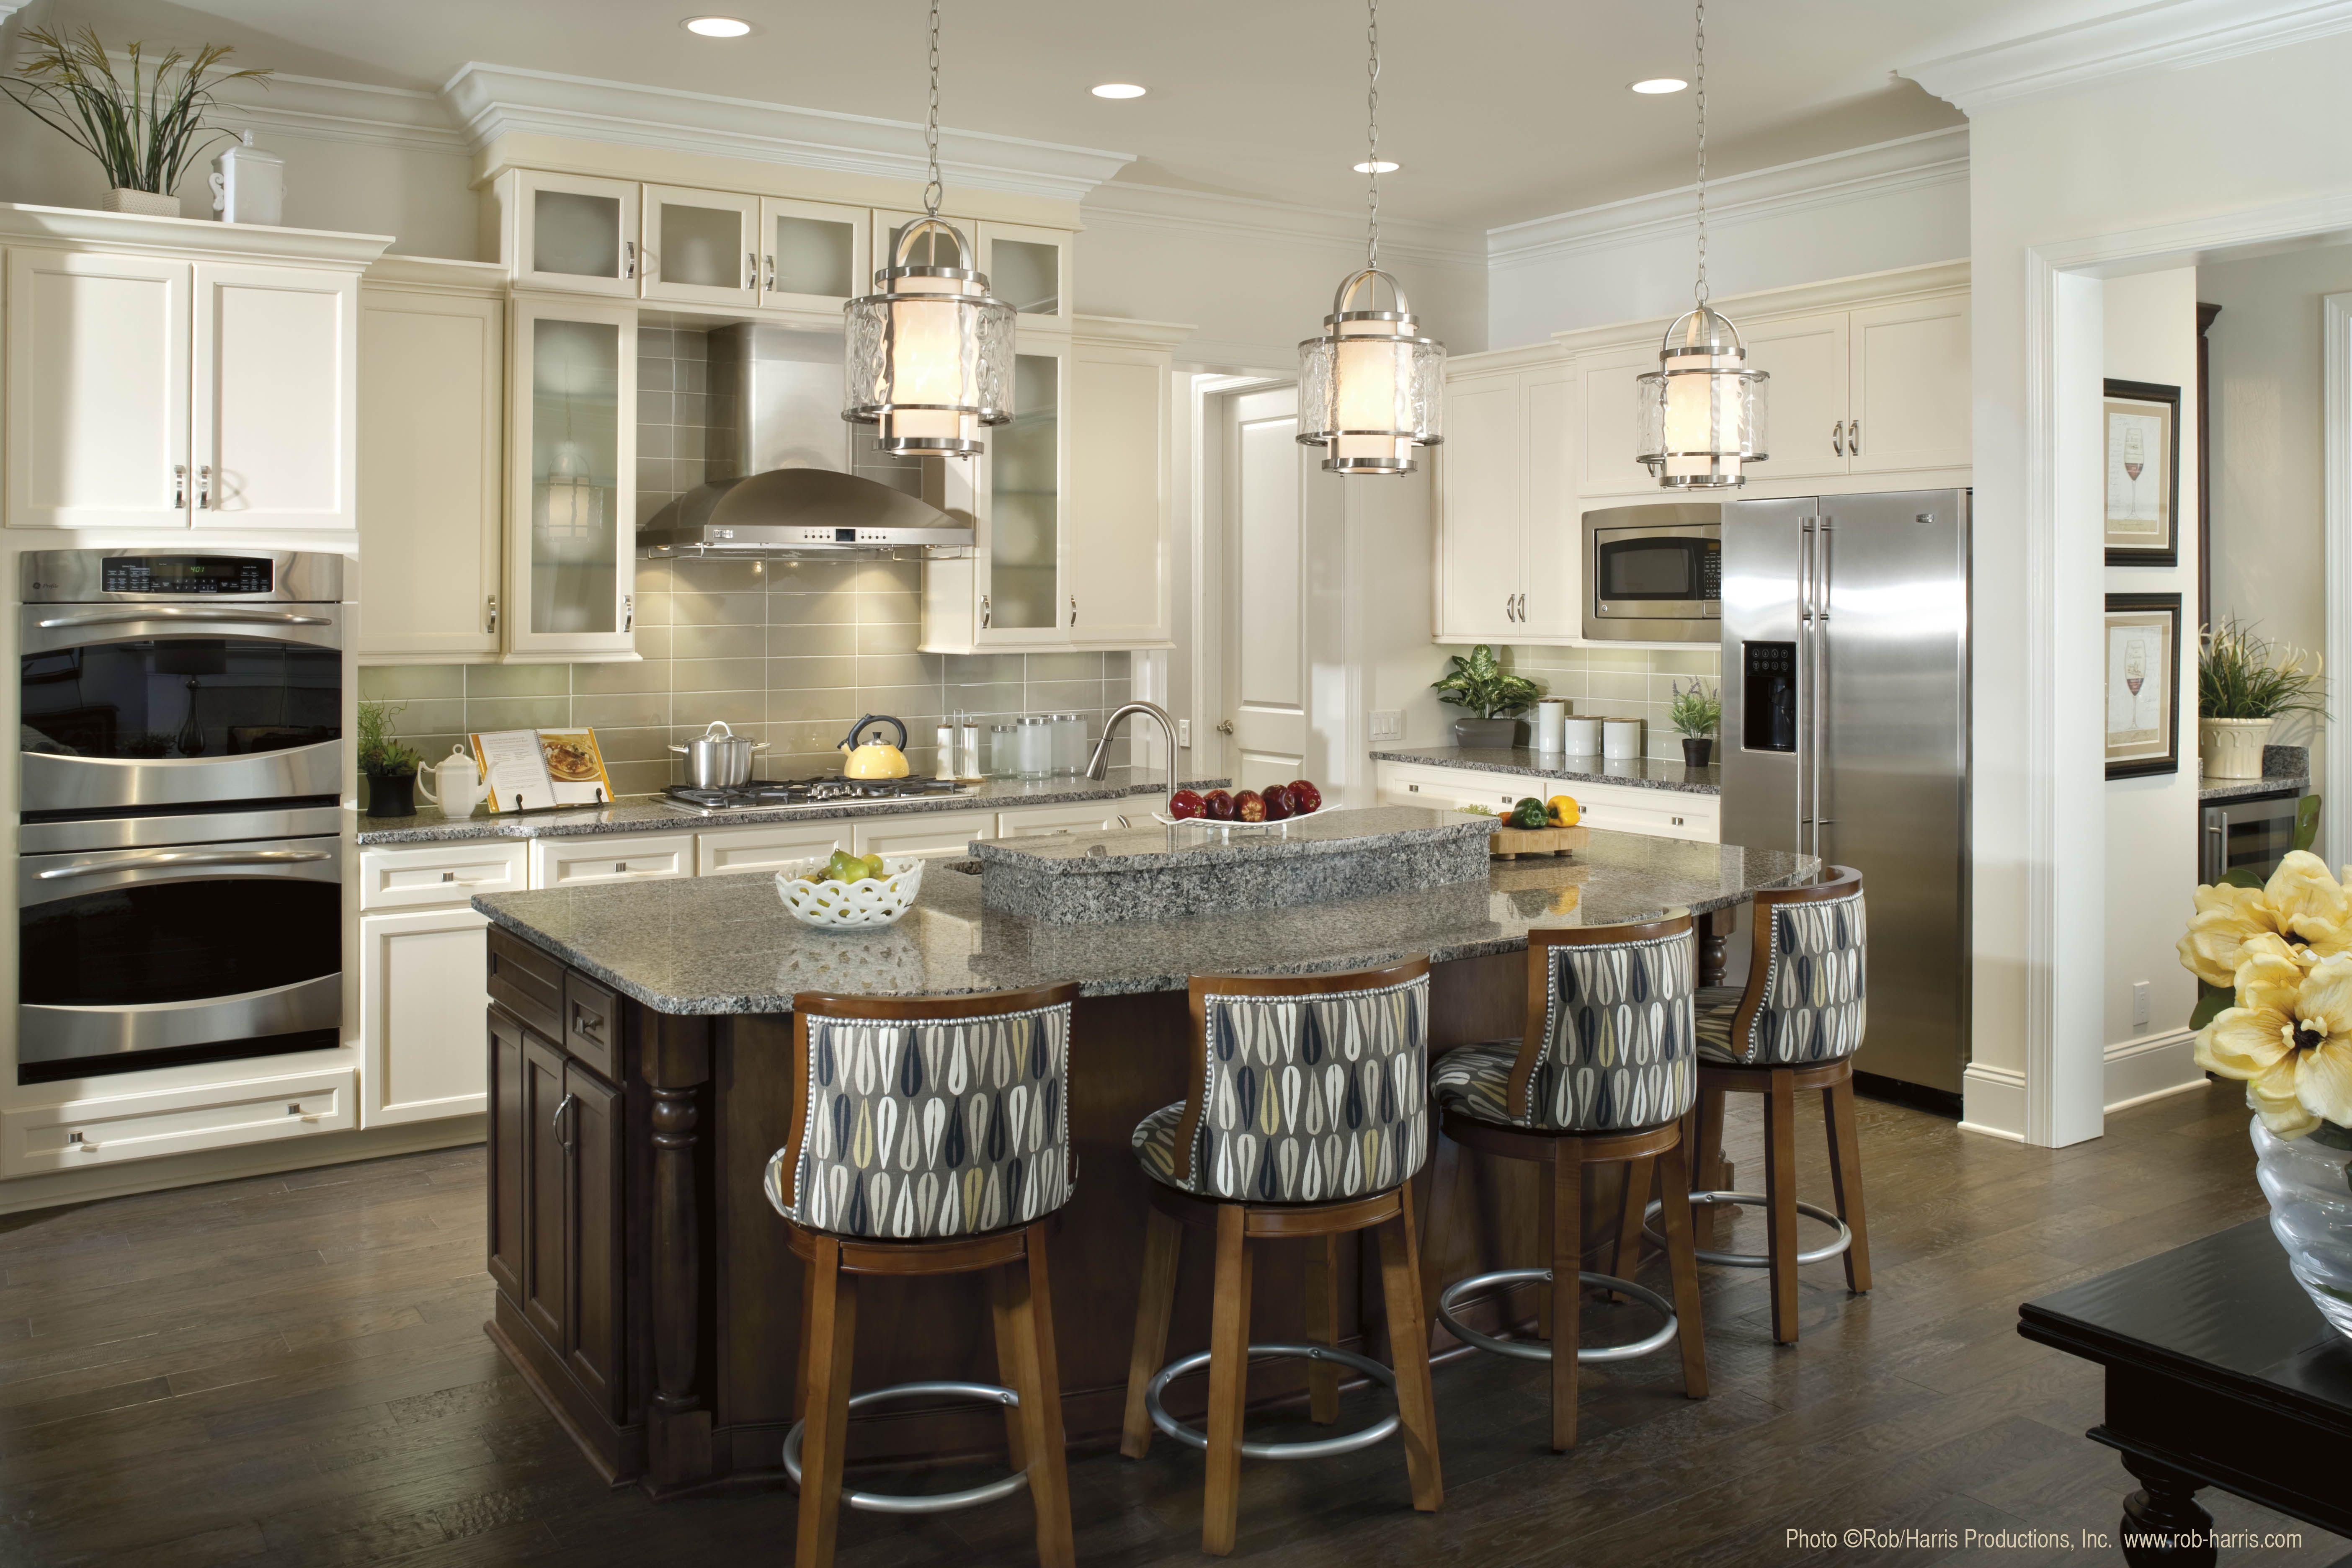 Lighting Fixtures Above Kitchen Island Pendant Lighting Over Kitchen Island The Perfect